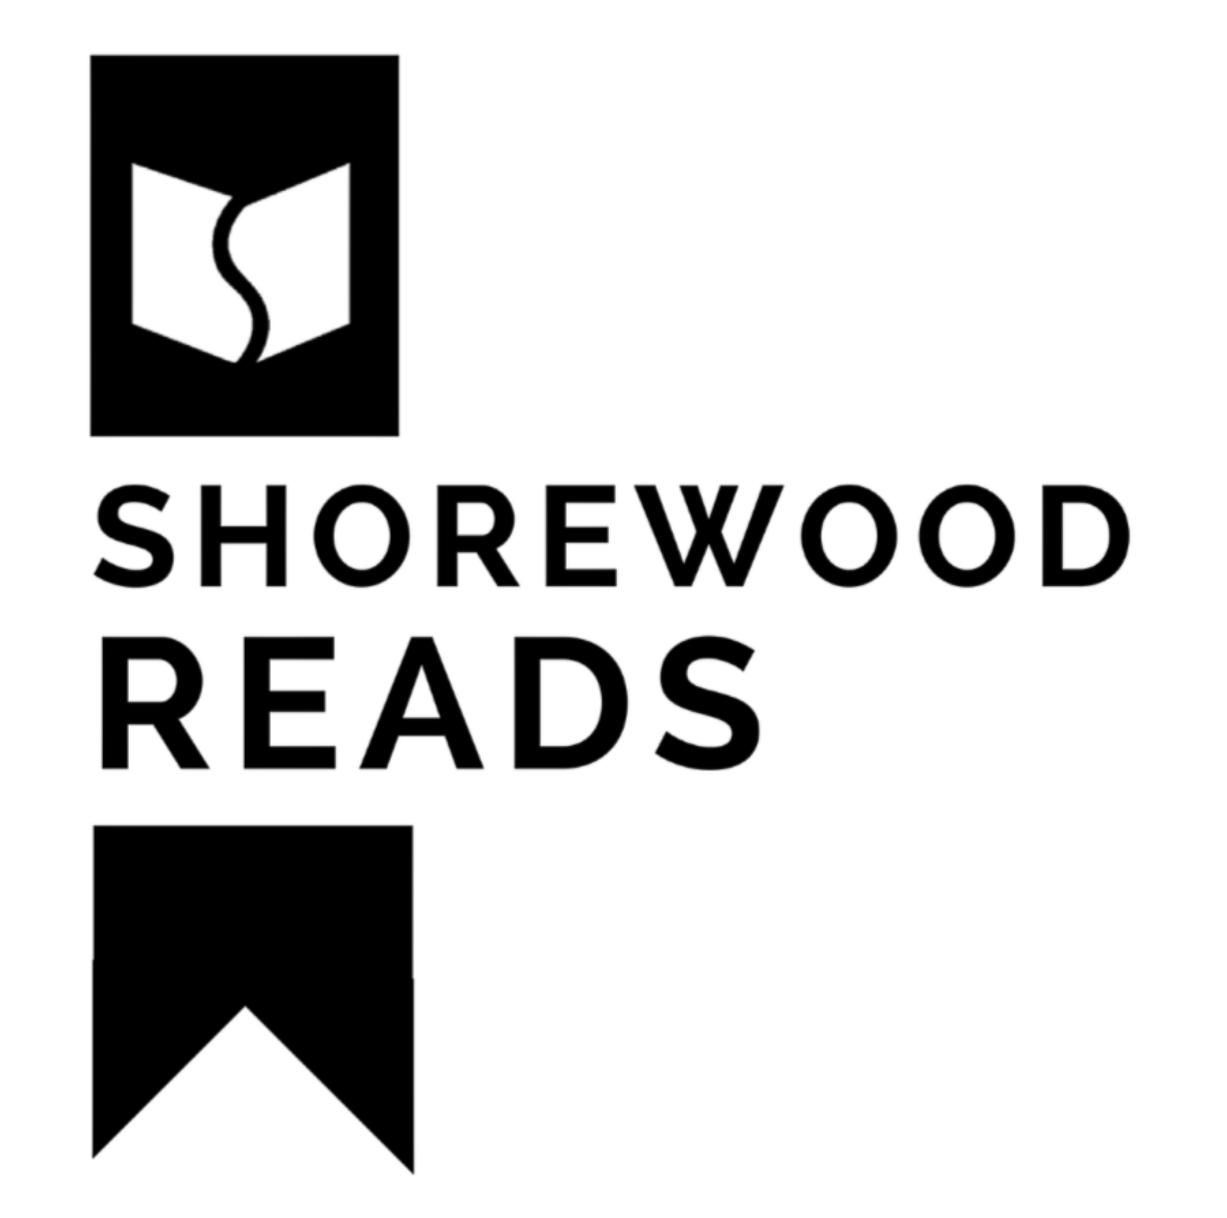 Reads: Shorewood Reads